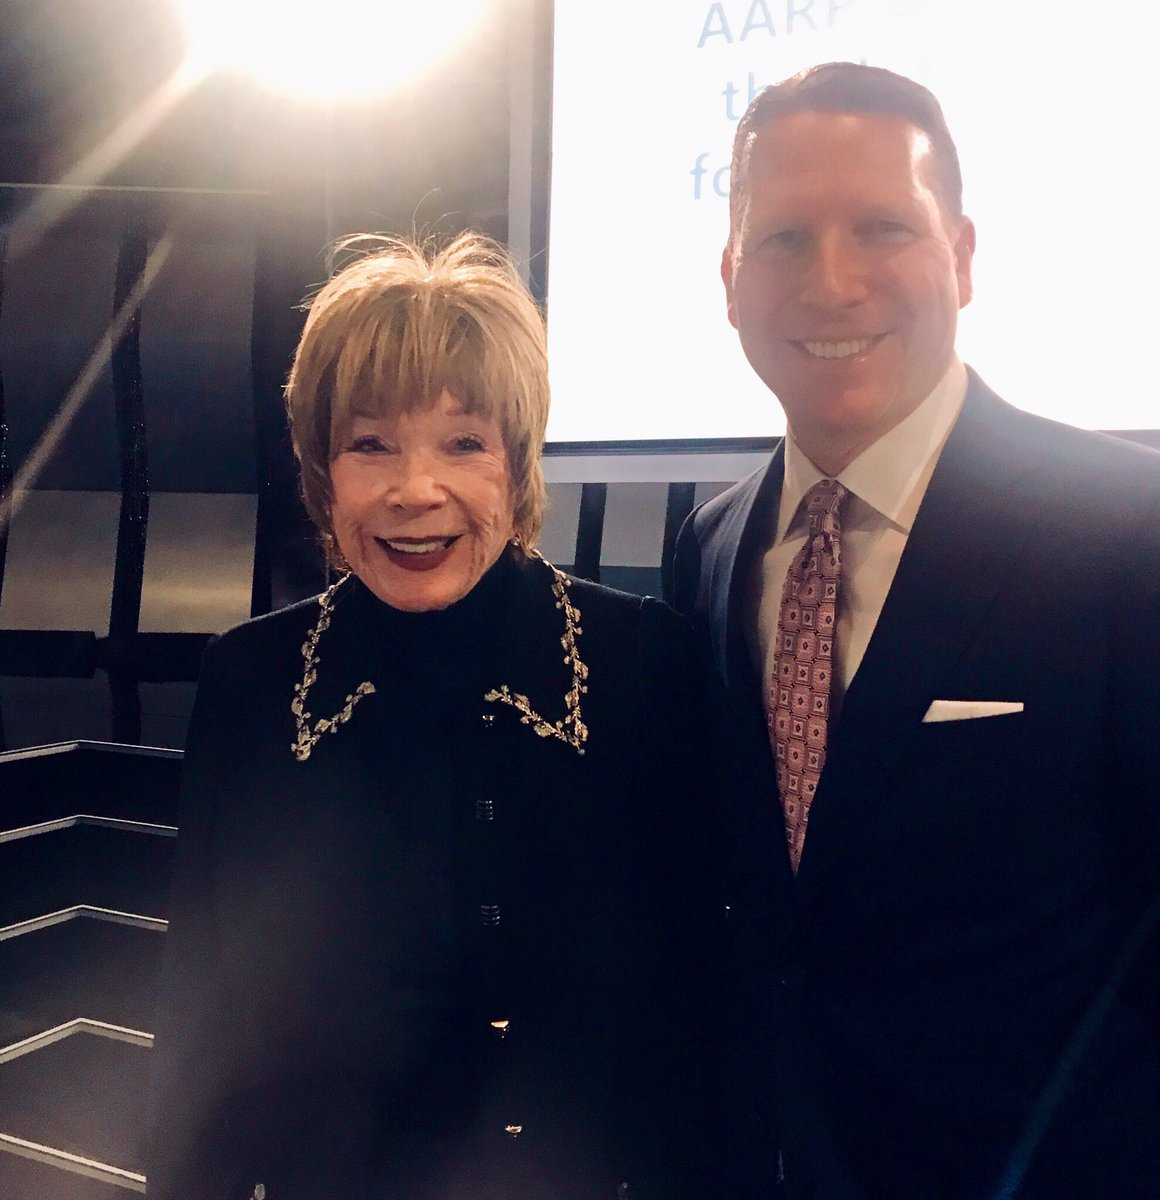 Great night celebrating #MoviesForGrownups with @AARP The Magazine. Congrats to Shirley MacLaine on her Career Achievment Award!